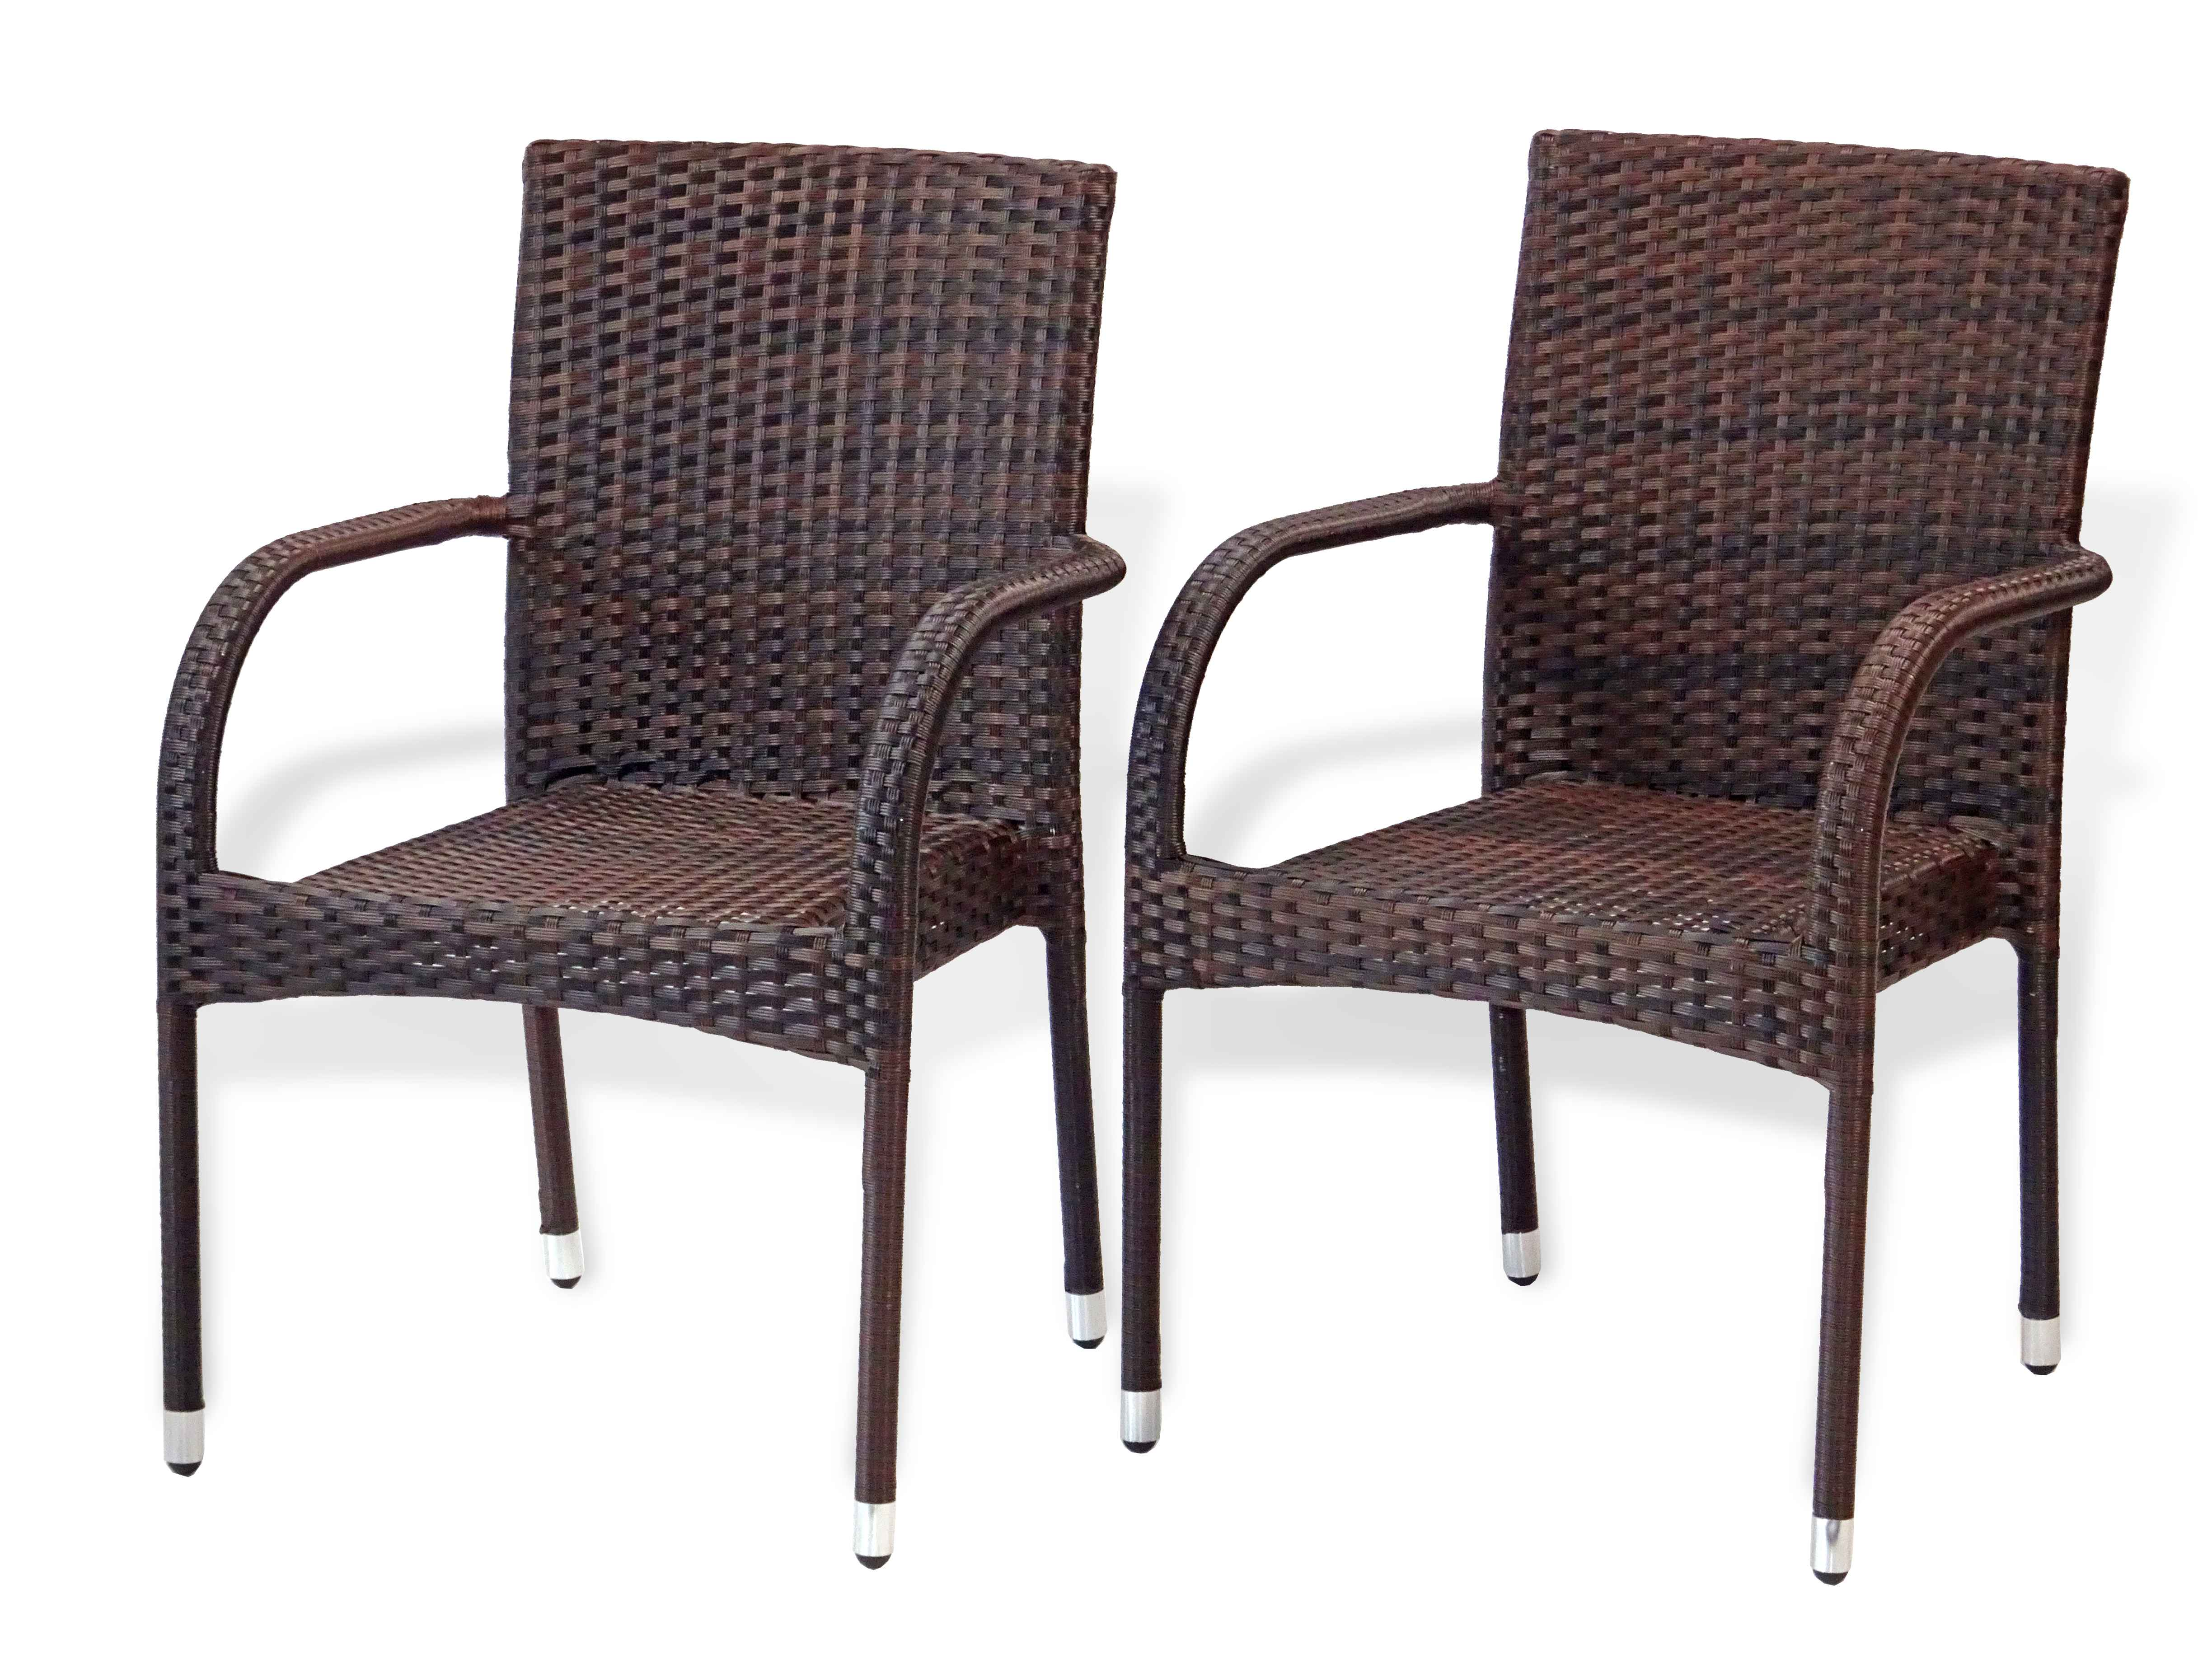 Patio 3 pc Dinning Set square table & armchairs – Rattan USA